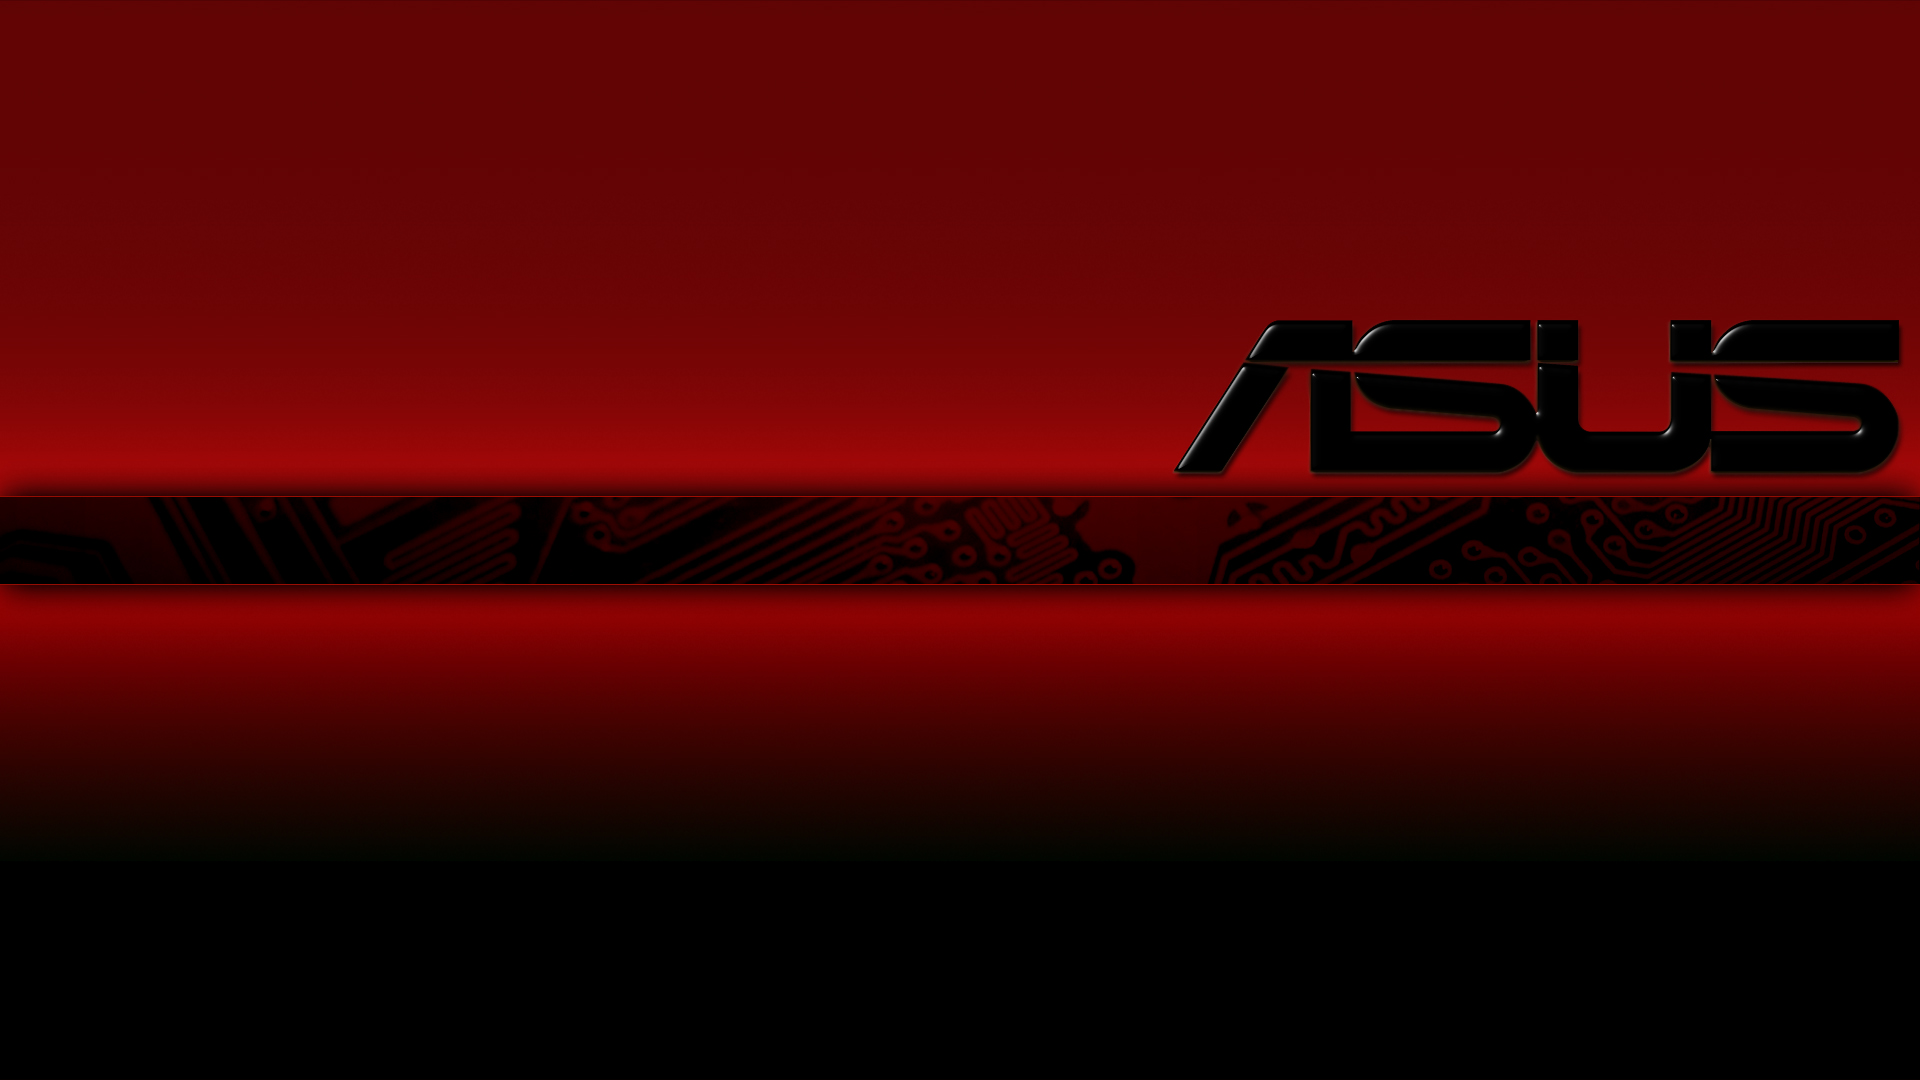 Good Asus Wallpaper Full HD Pictures 1920x1080